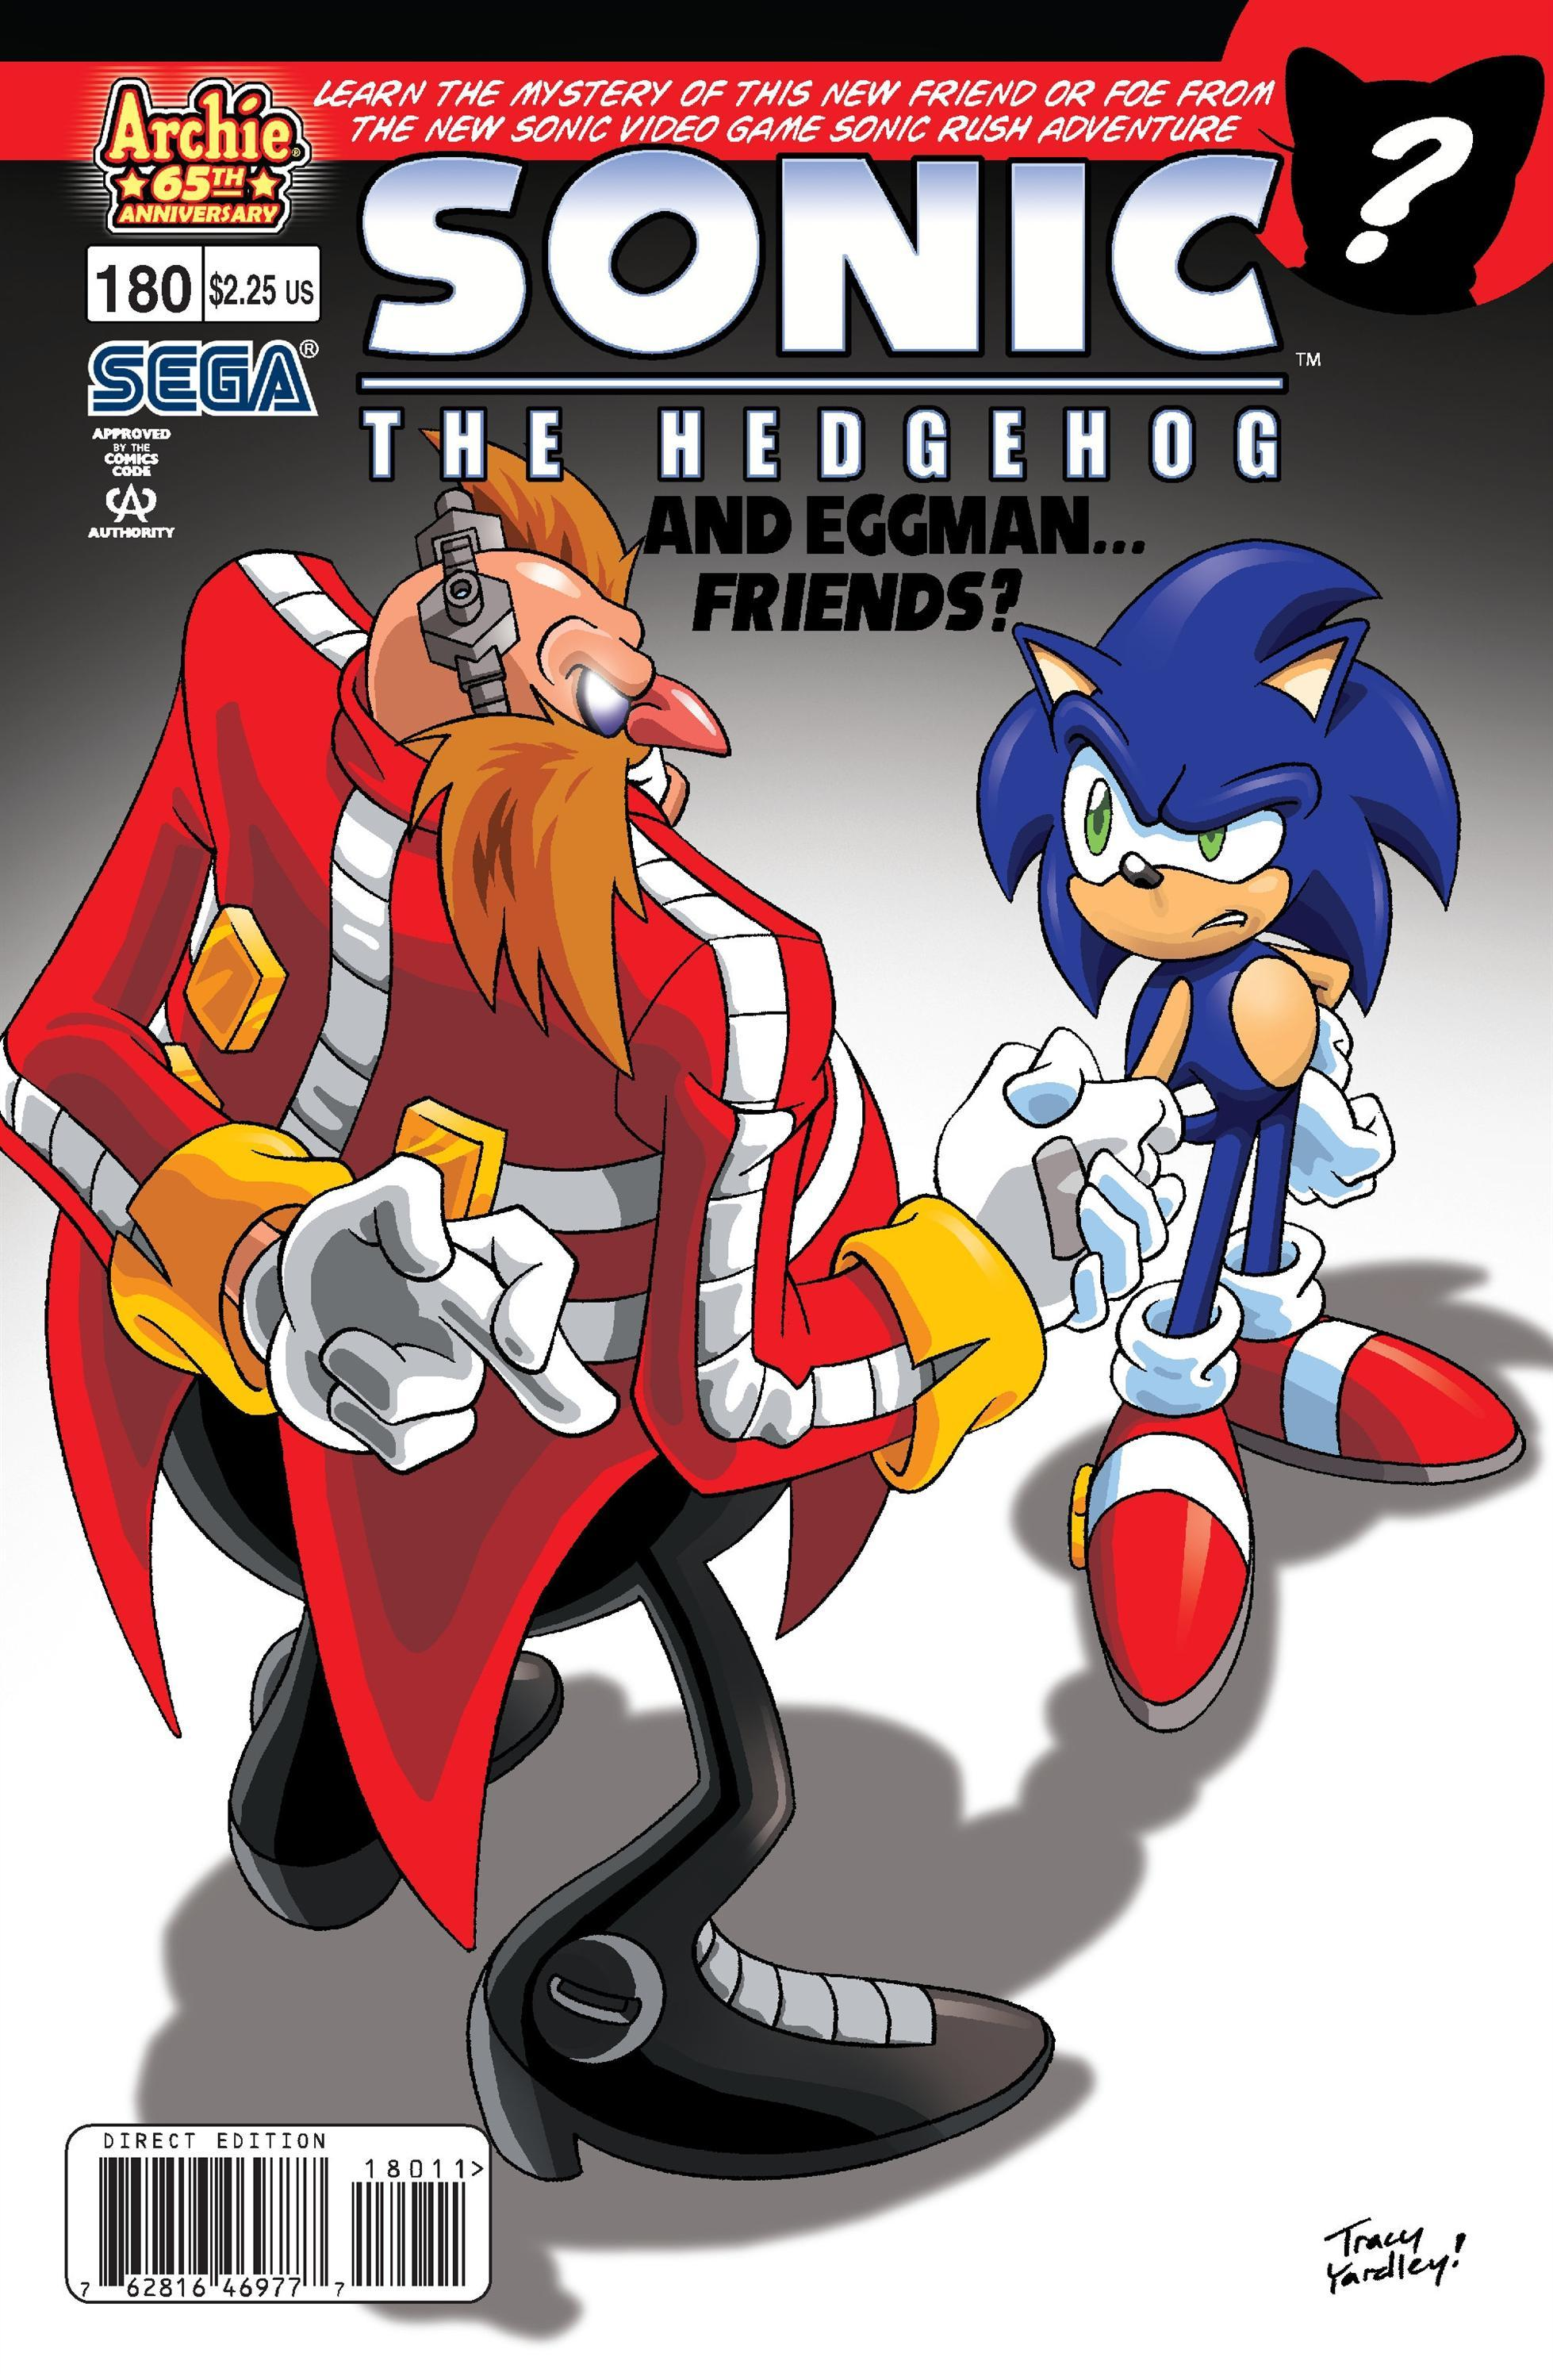 Archie Sonic the Hedgehog Issue 180